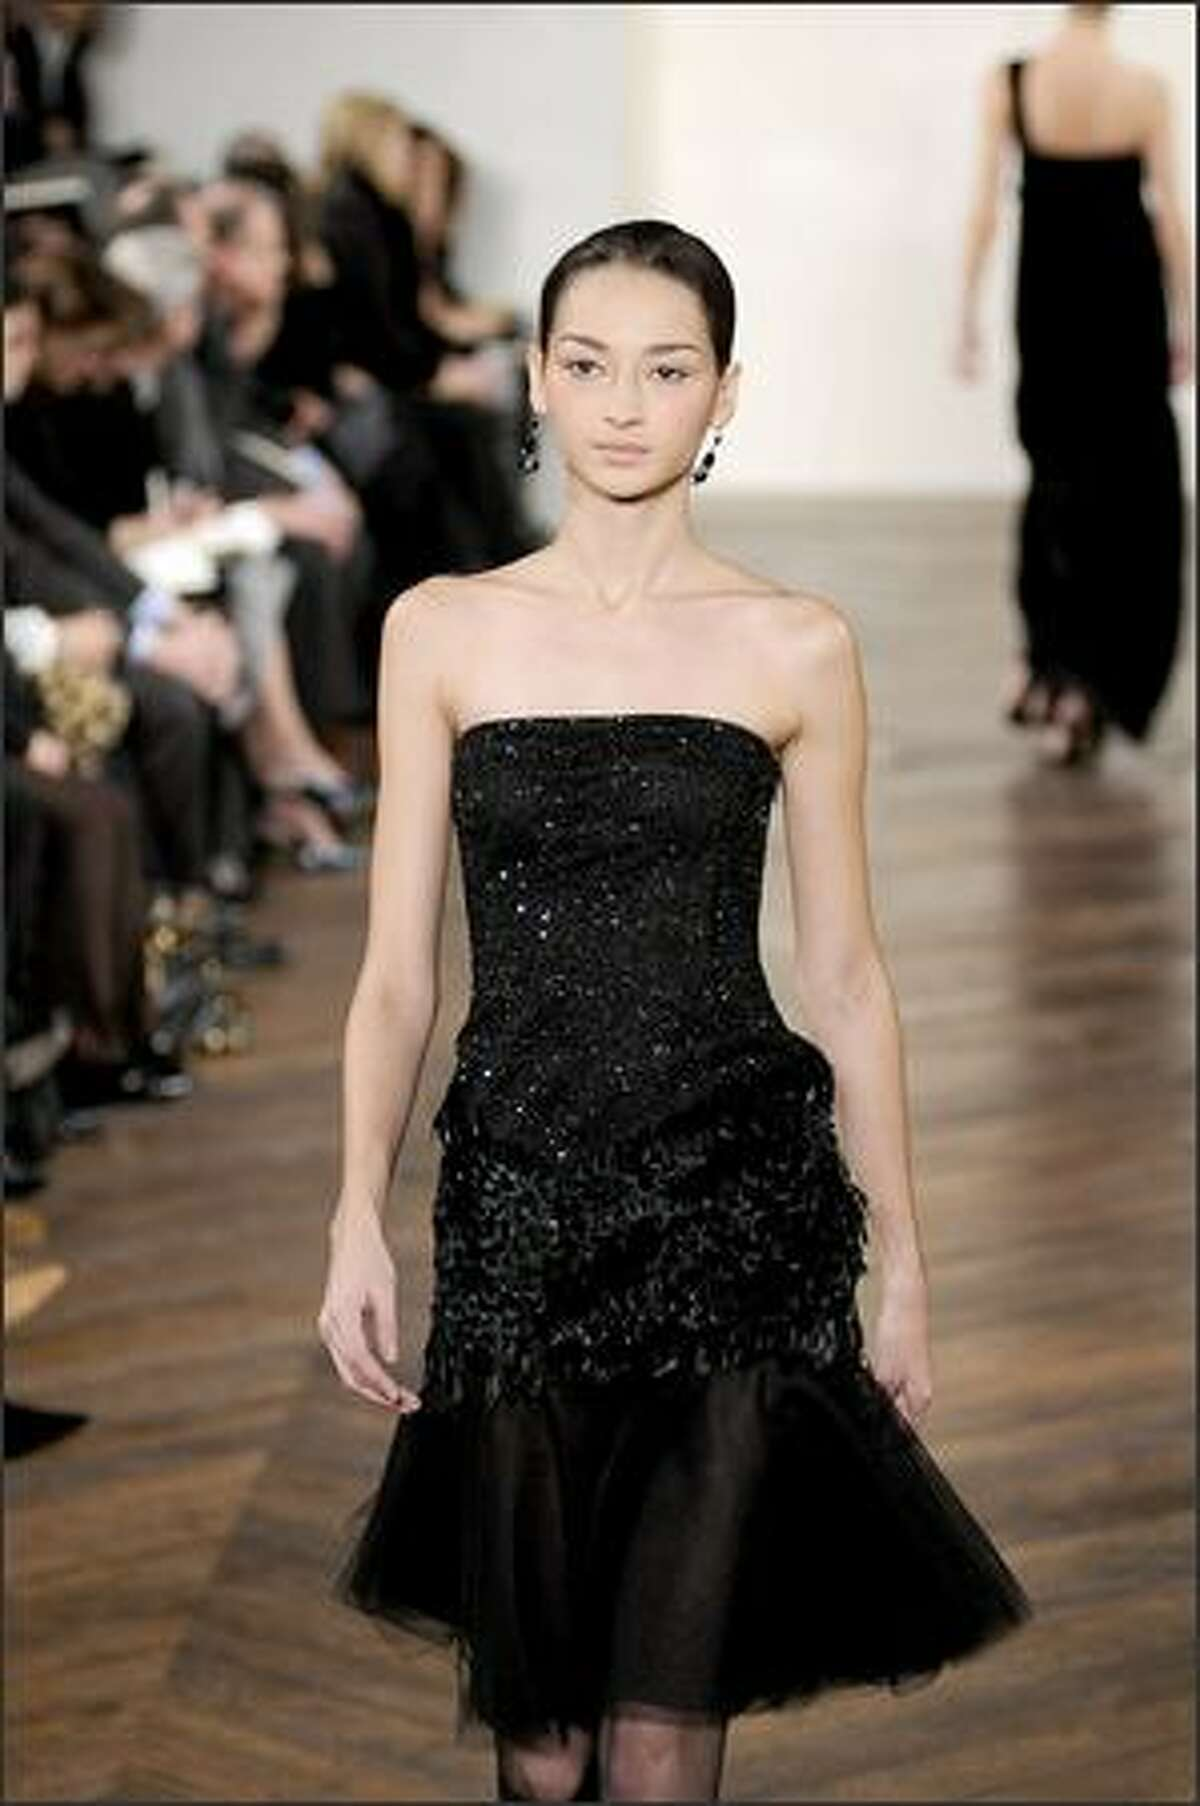 A model walks the runway at the Ralph Lauren Fall 2008 fashion show during Mercedes-Benz Fashion Week Fall 2008 at Skylight Studios in New York City.